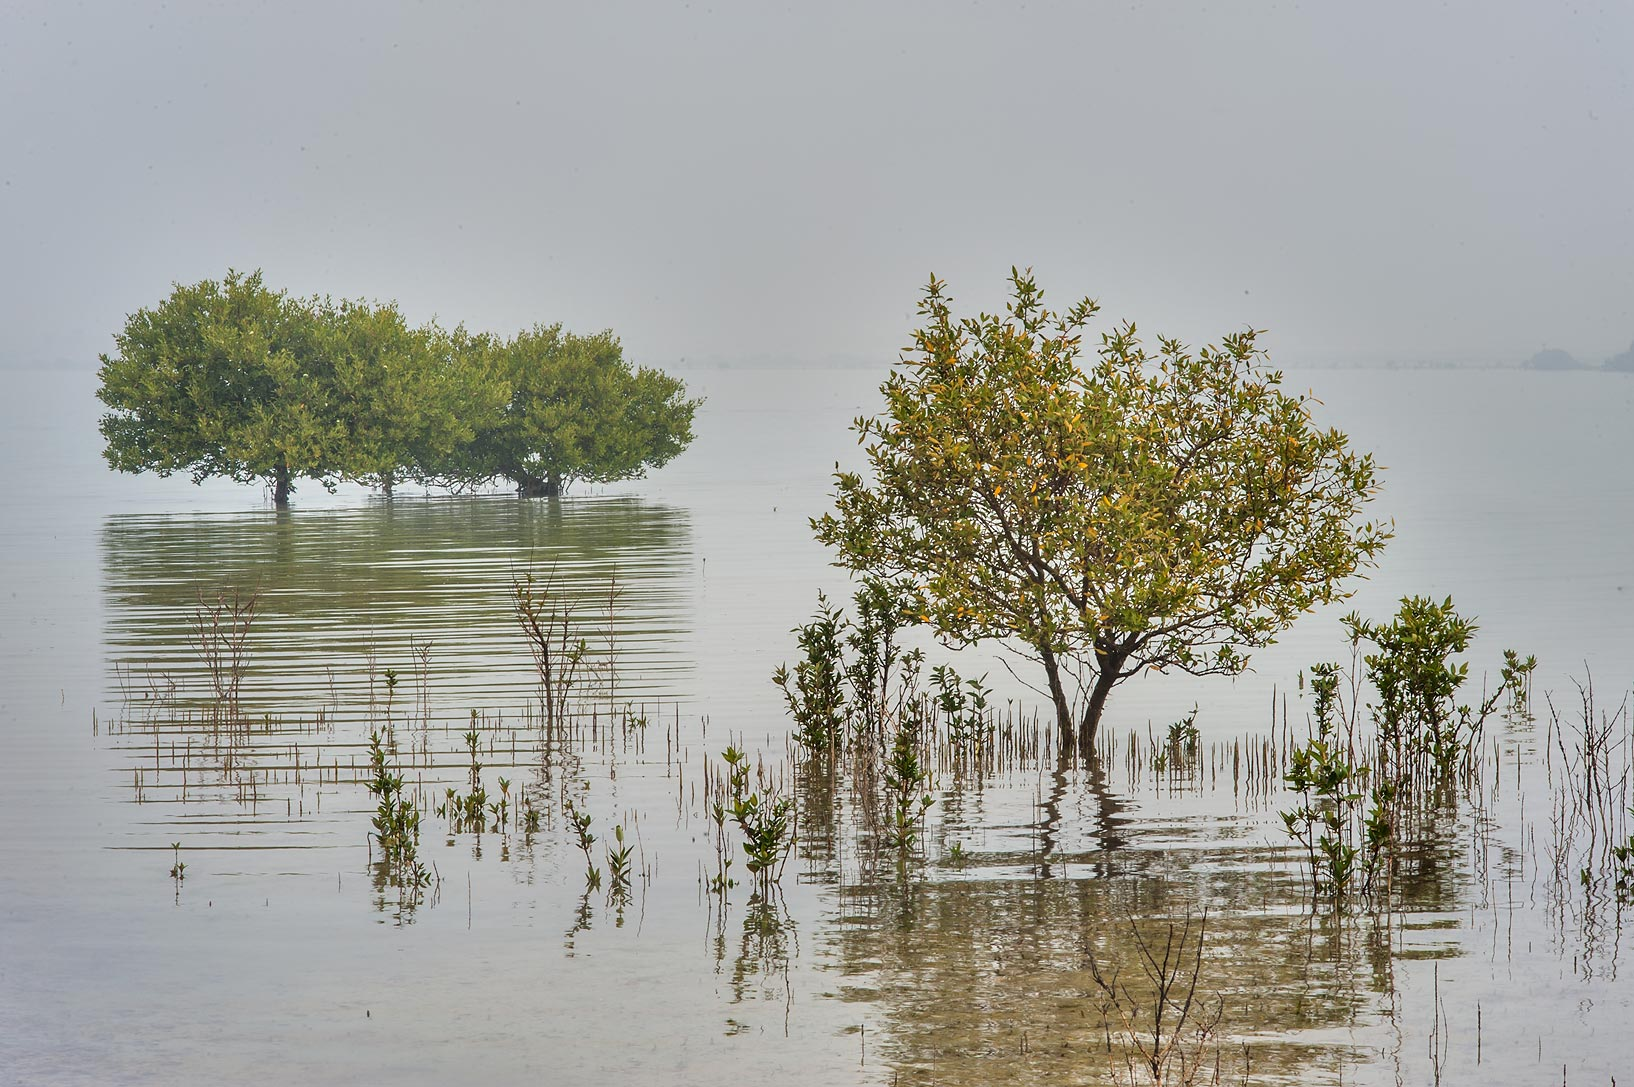 Group of mangrove trees (Avicennia marina) in...Jazirat Bin Ghanim). Al Khor, Qatar